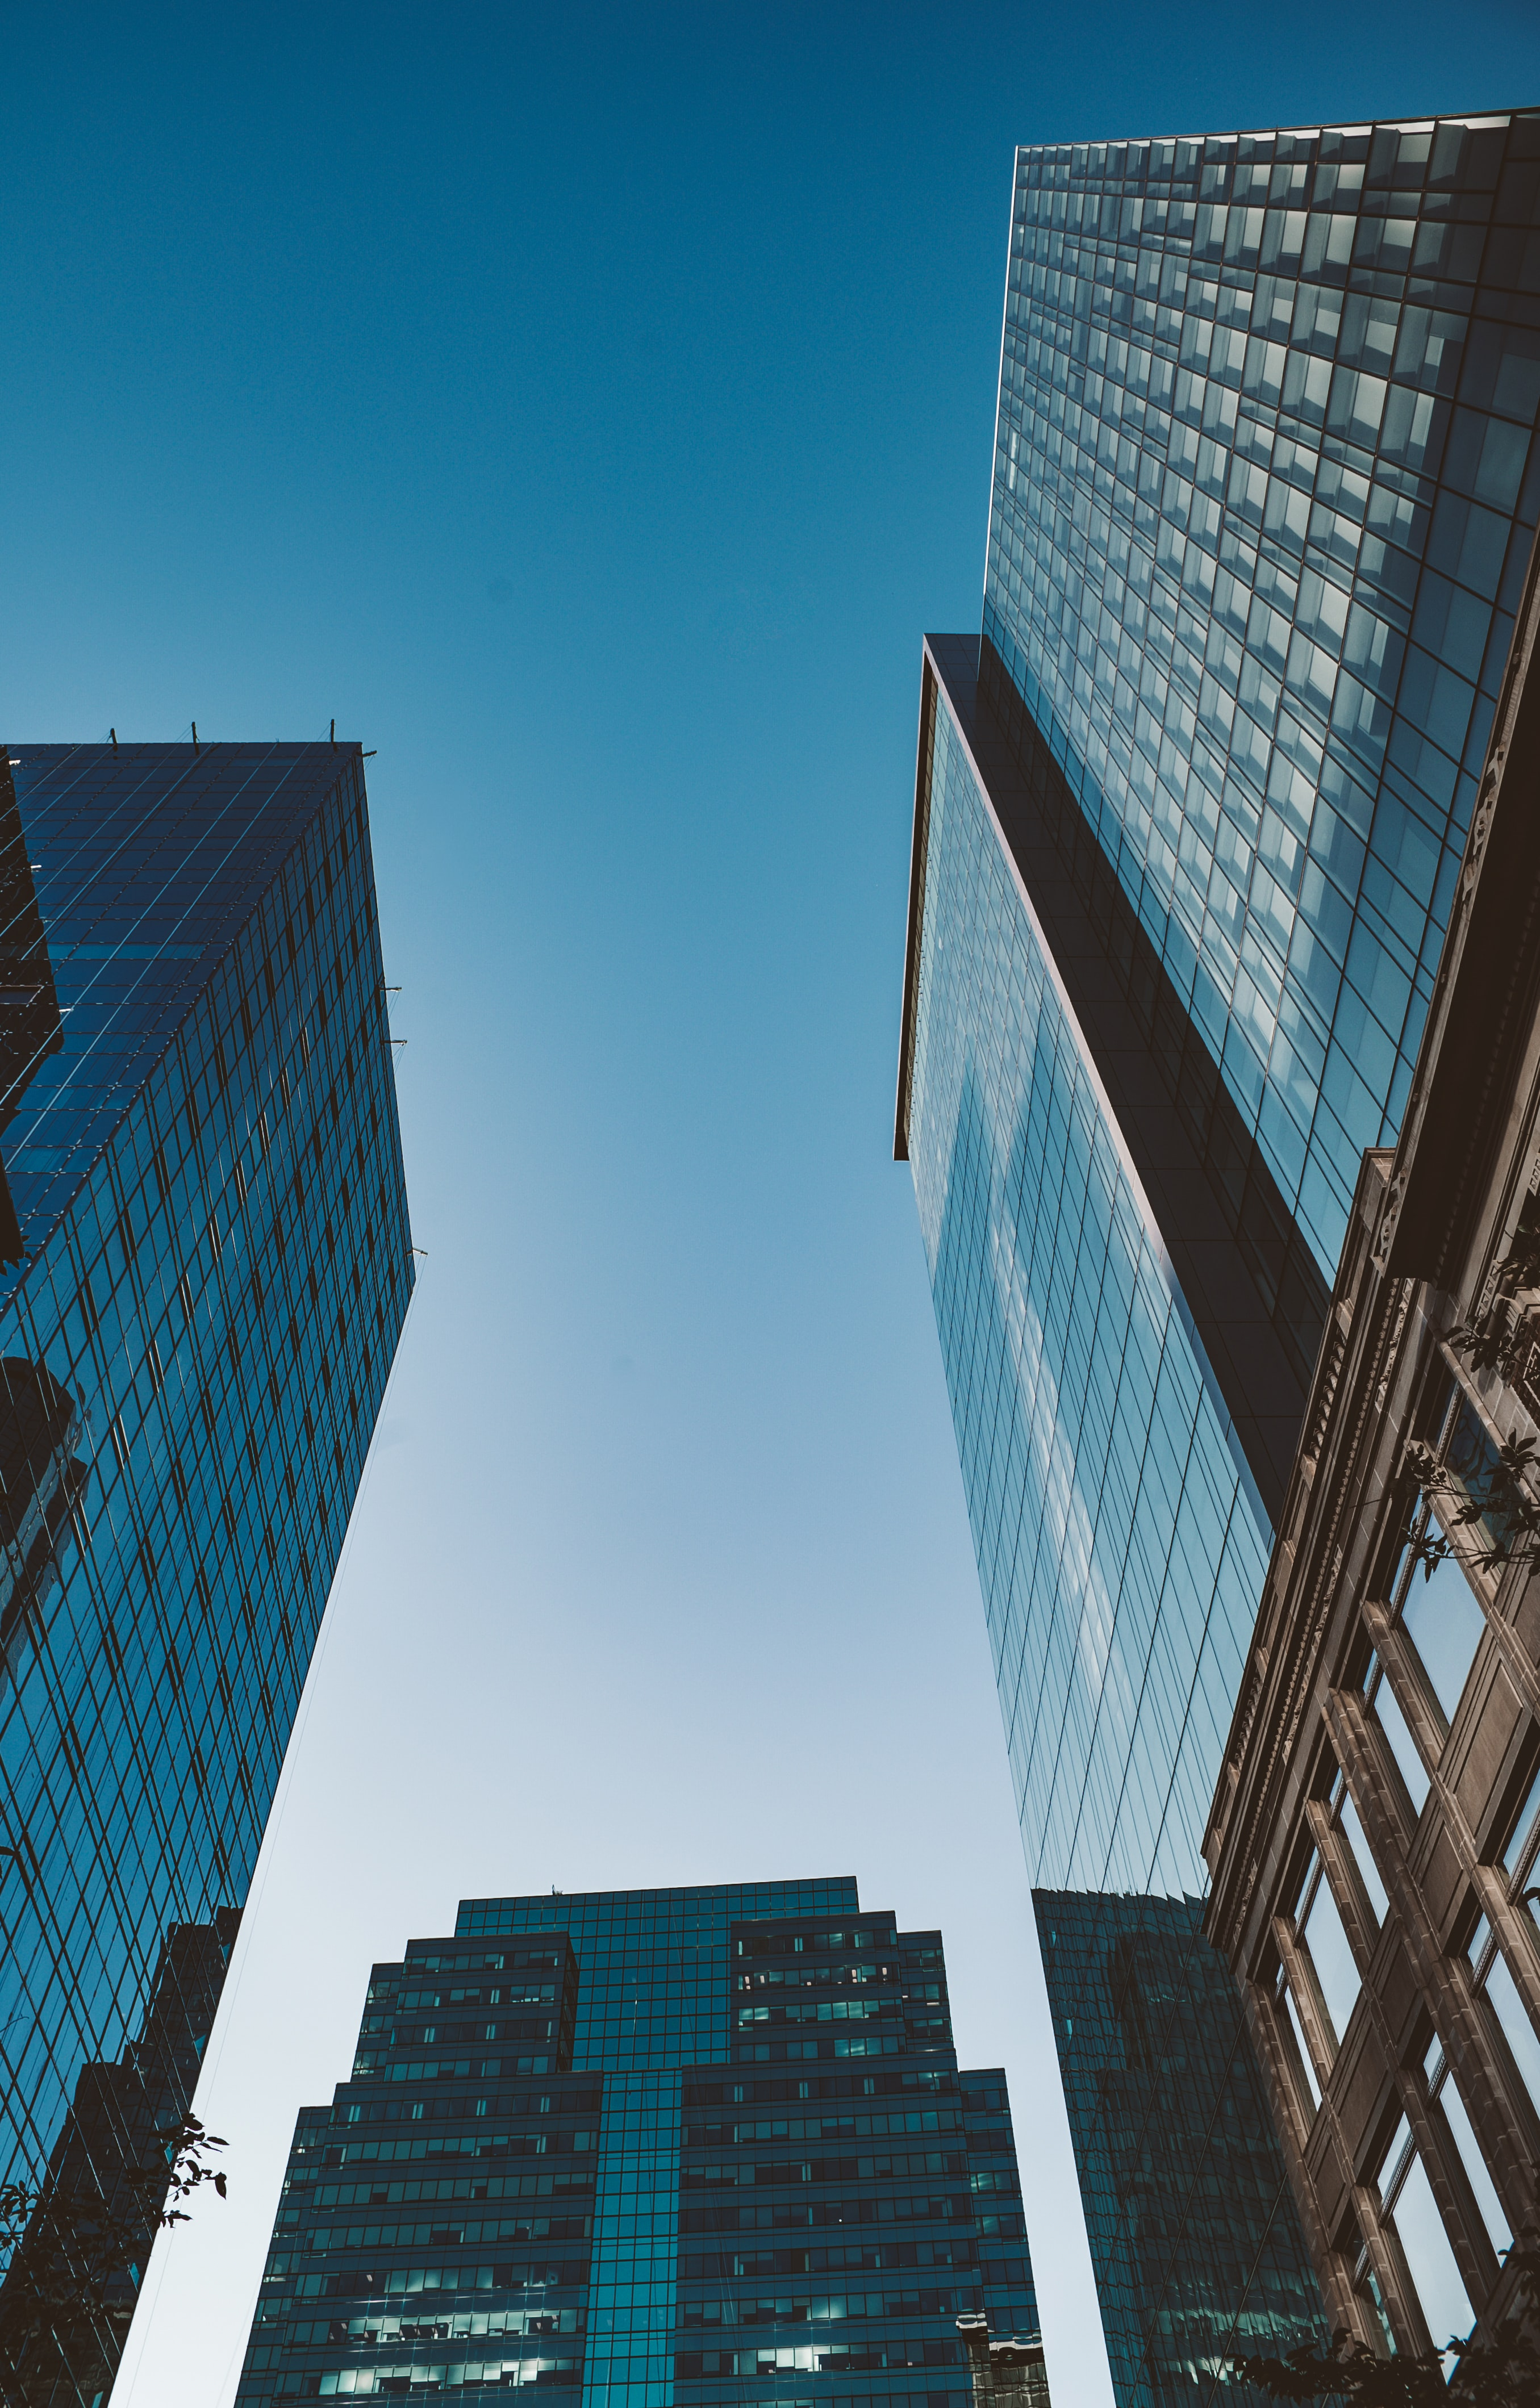 low angle photography of high-rise buildings under calm sky